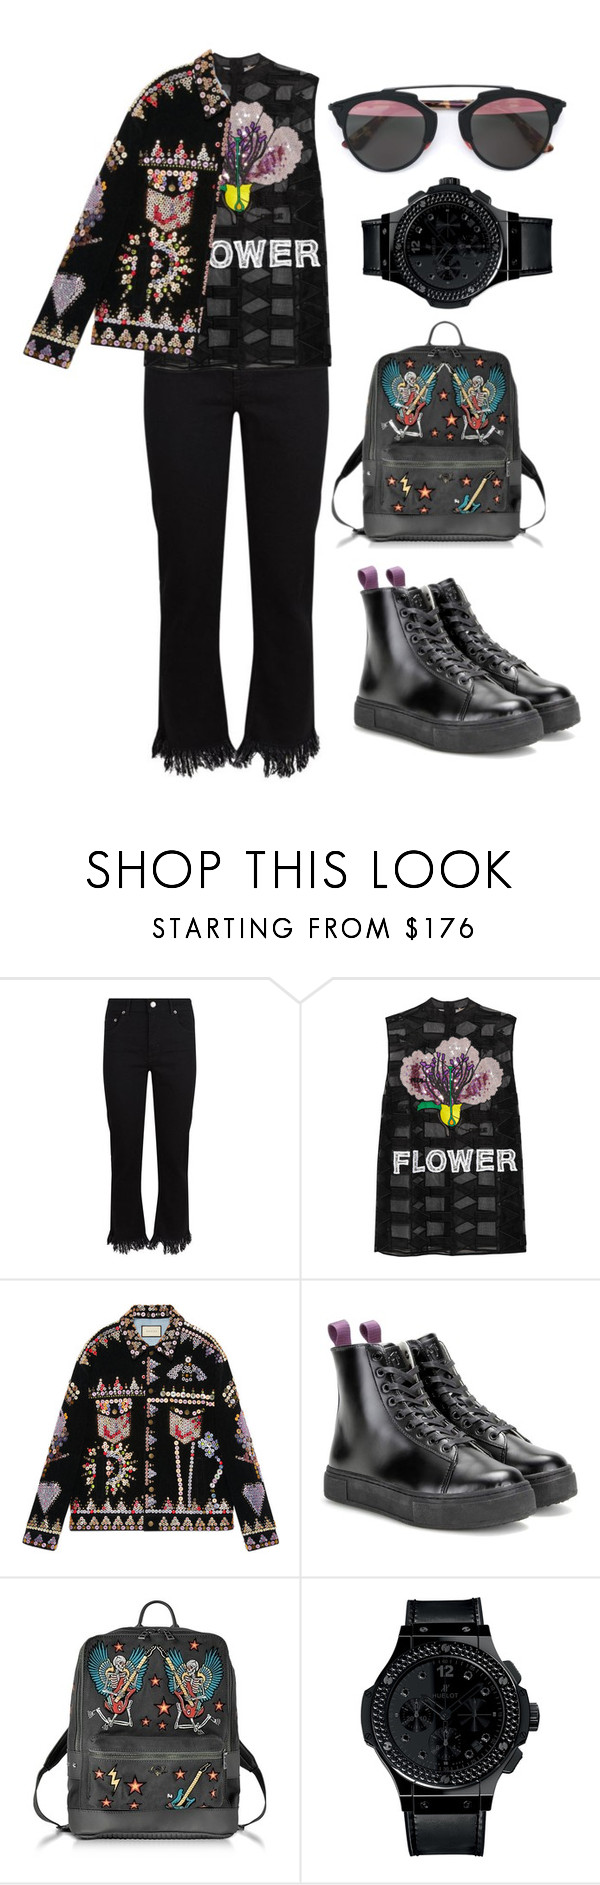 """///"" by lunaashton ❤ liked on Polyvore featuring Maje, Christopher Kane, Gucci, Eytys, Zadig & Voltaire, Hublot and Christian Dior"